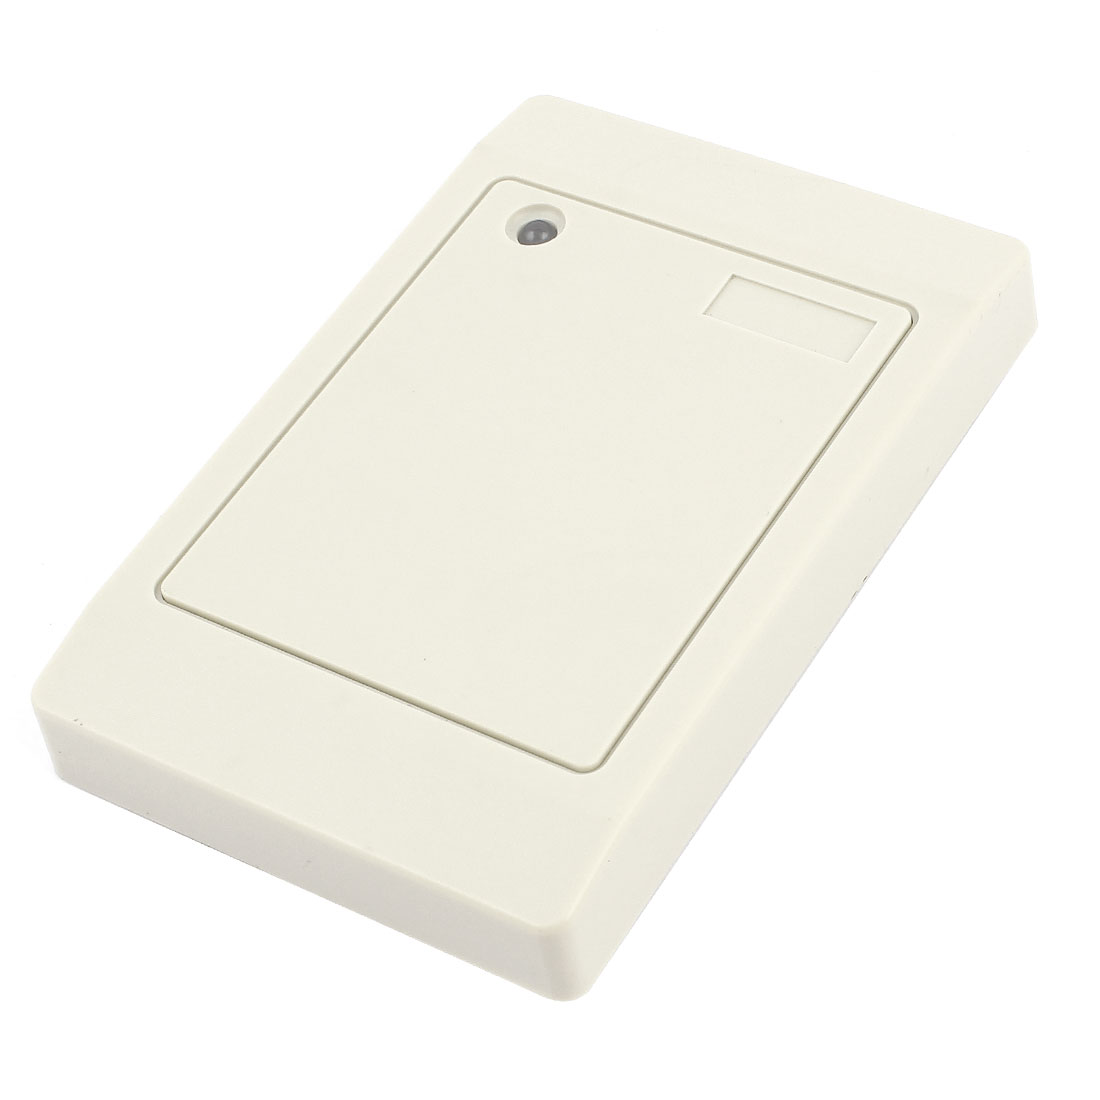 Waterproof IC 26 RFID Smart Card Reader EM4100 Beige for Home Office Door Entry Access Control Security System